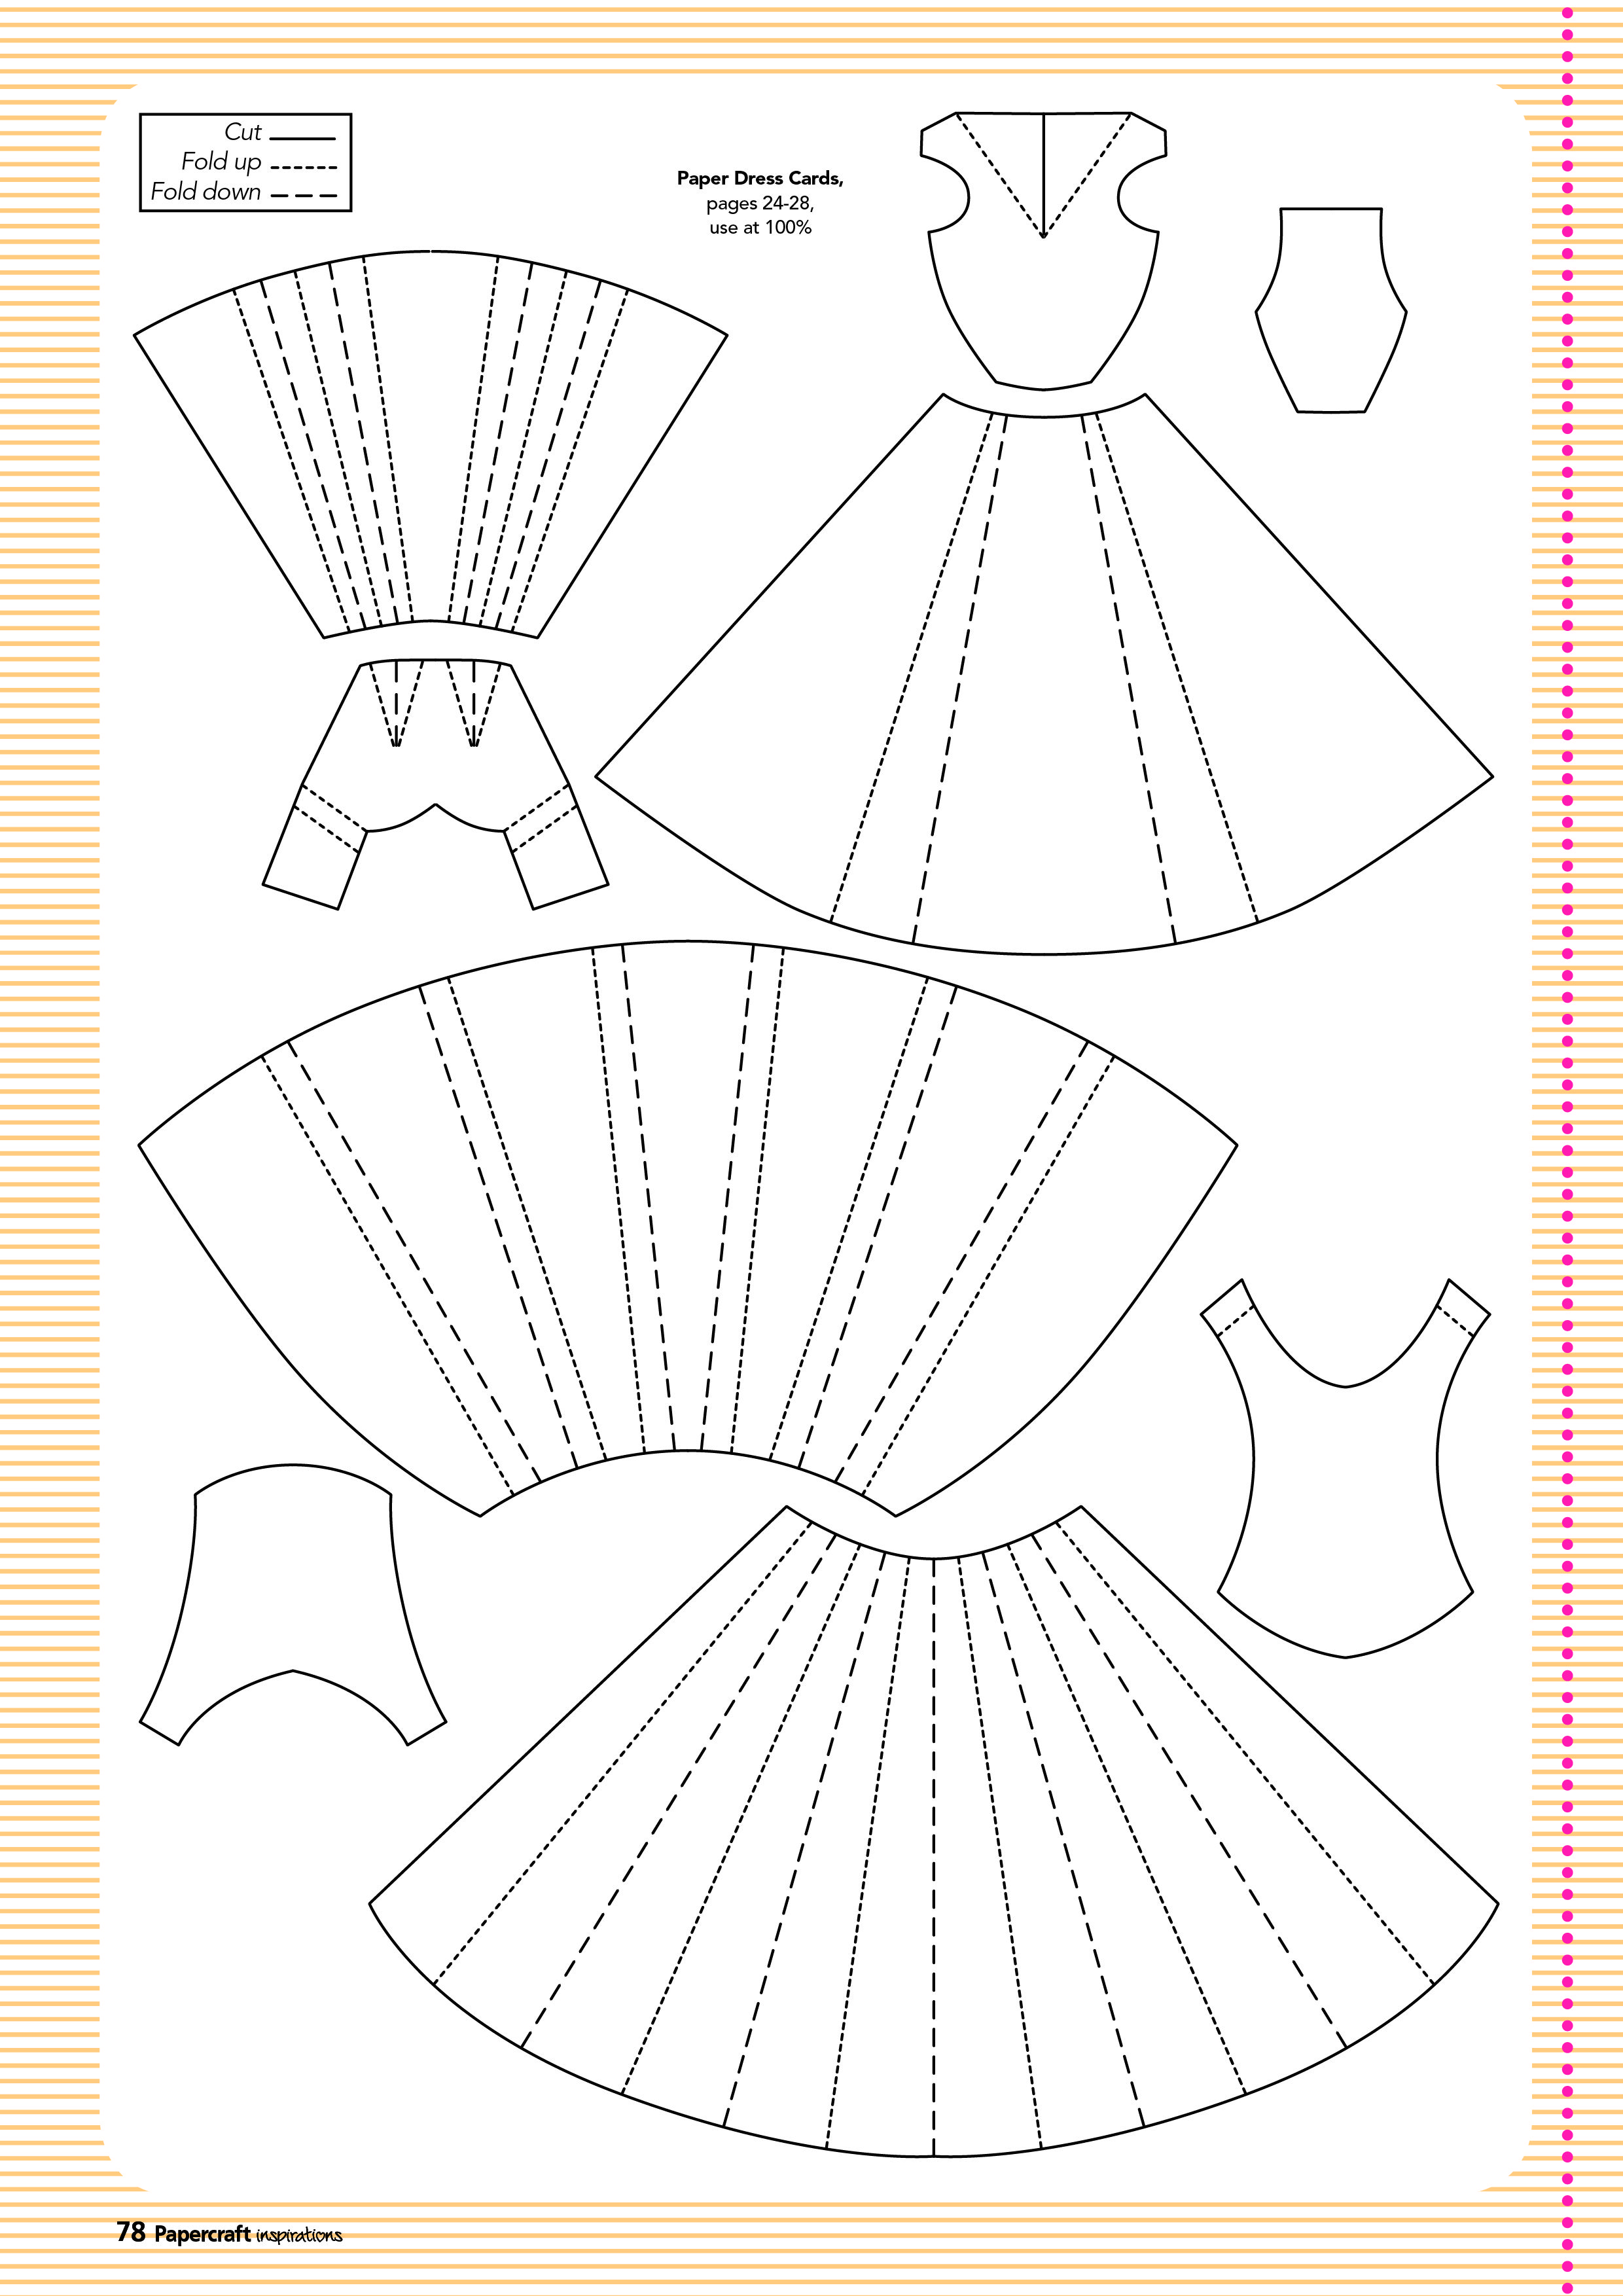 Free Folded Paper Dress Cardmaking Template Paper Embroidery Paper Dress Cards Handmade